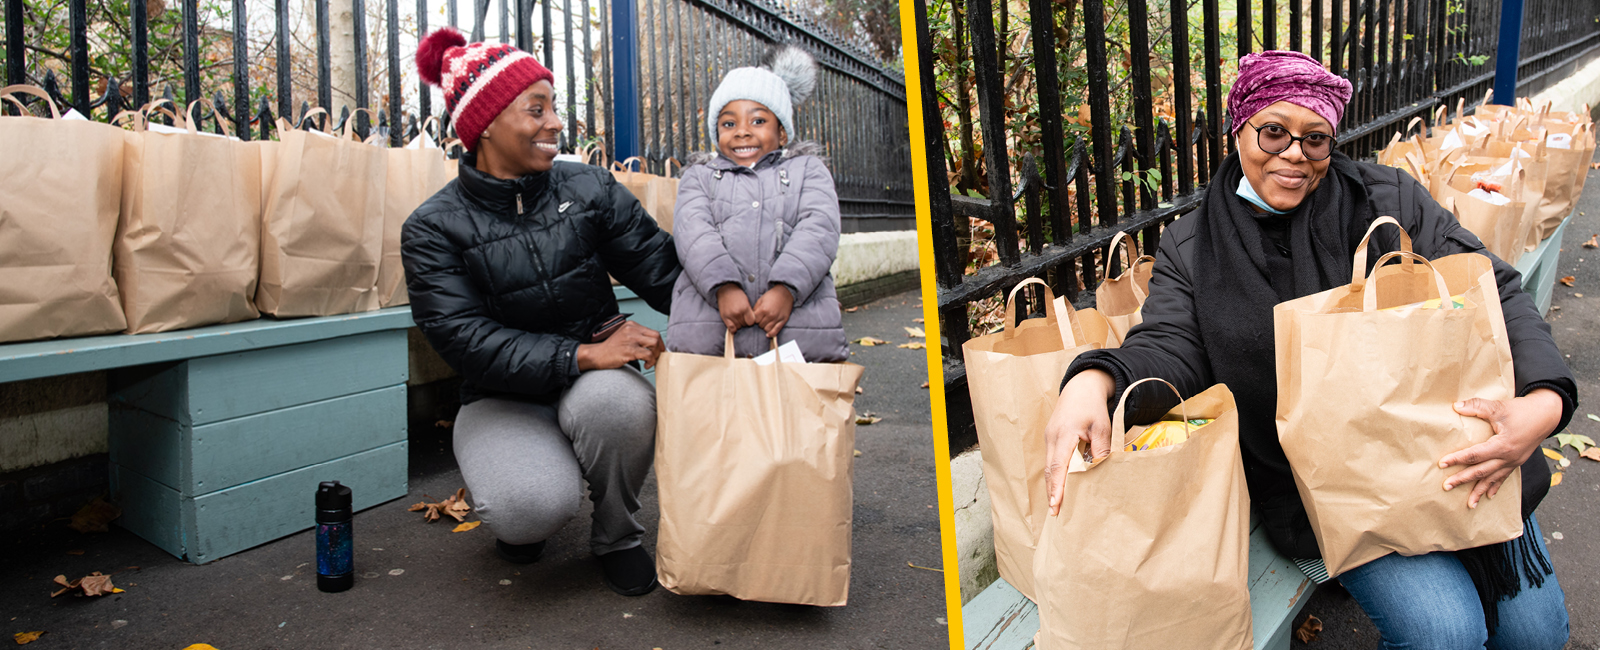 Smiling parents with bags of food